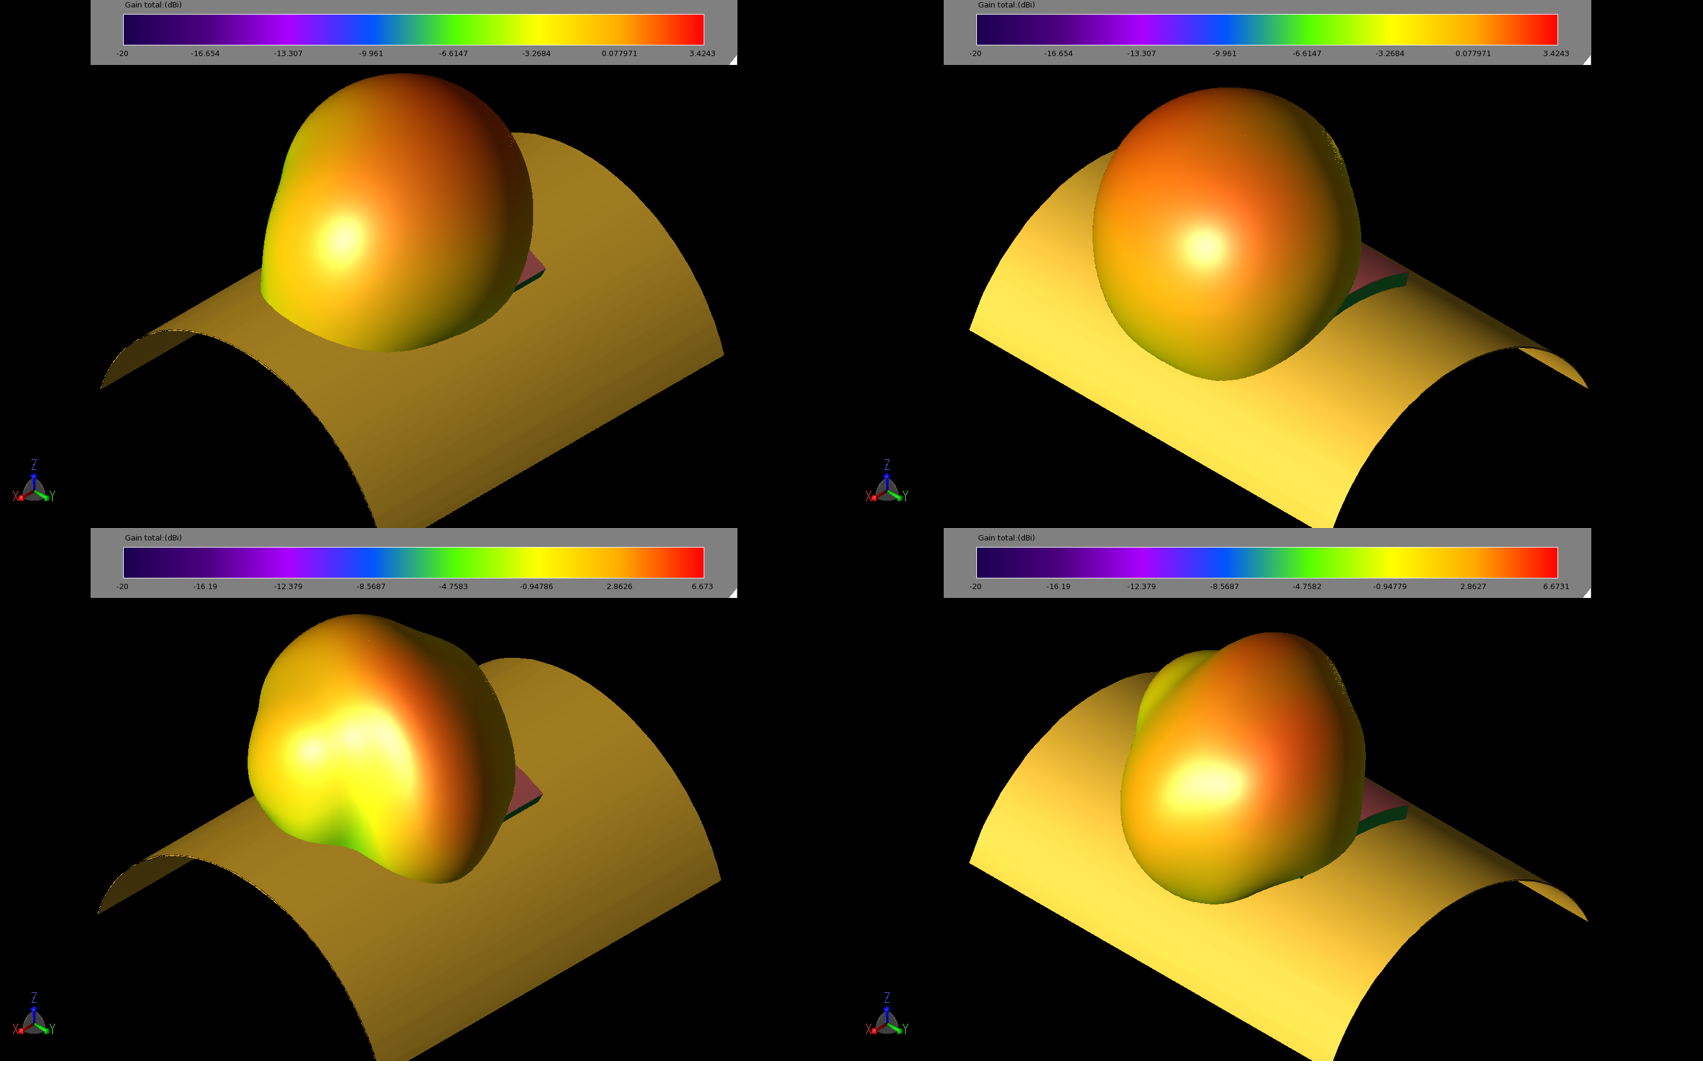 Figure 9: Gain patterns for the patch antenna on the curved structures show slight variations in the patterns and reductions in the peak gain. The images are 40 mm curve about X at 2.45 GHz (upper left, 9a), curve about Y at 2.45 GHz (upper right, 9b), curve about X at 5.5 GHz (lower left, 9c), and curve about Y at 5.5 GHz (lower right, 9d).